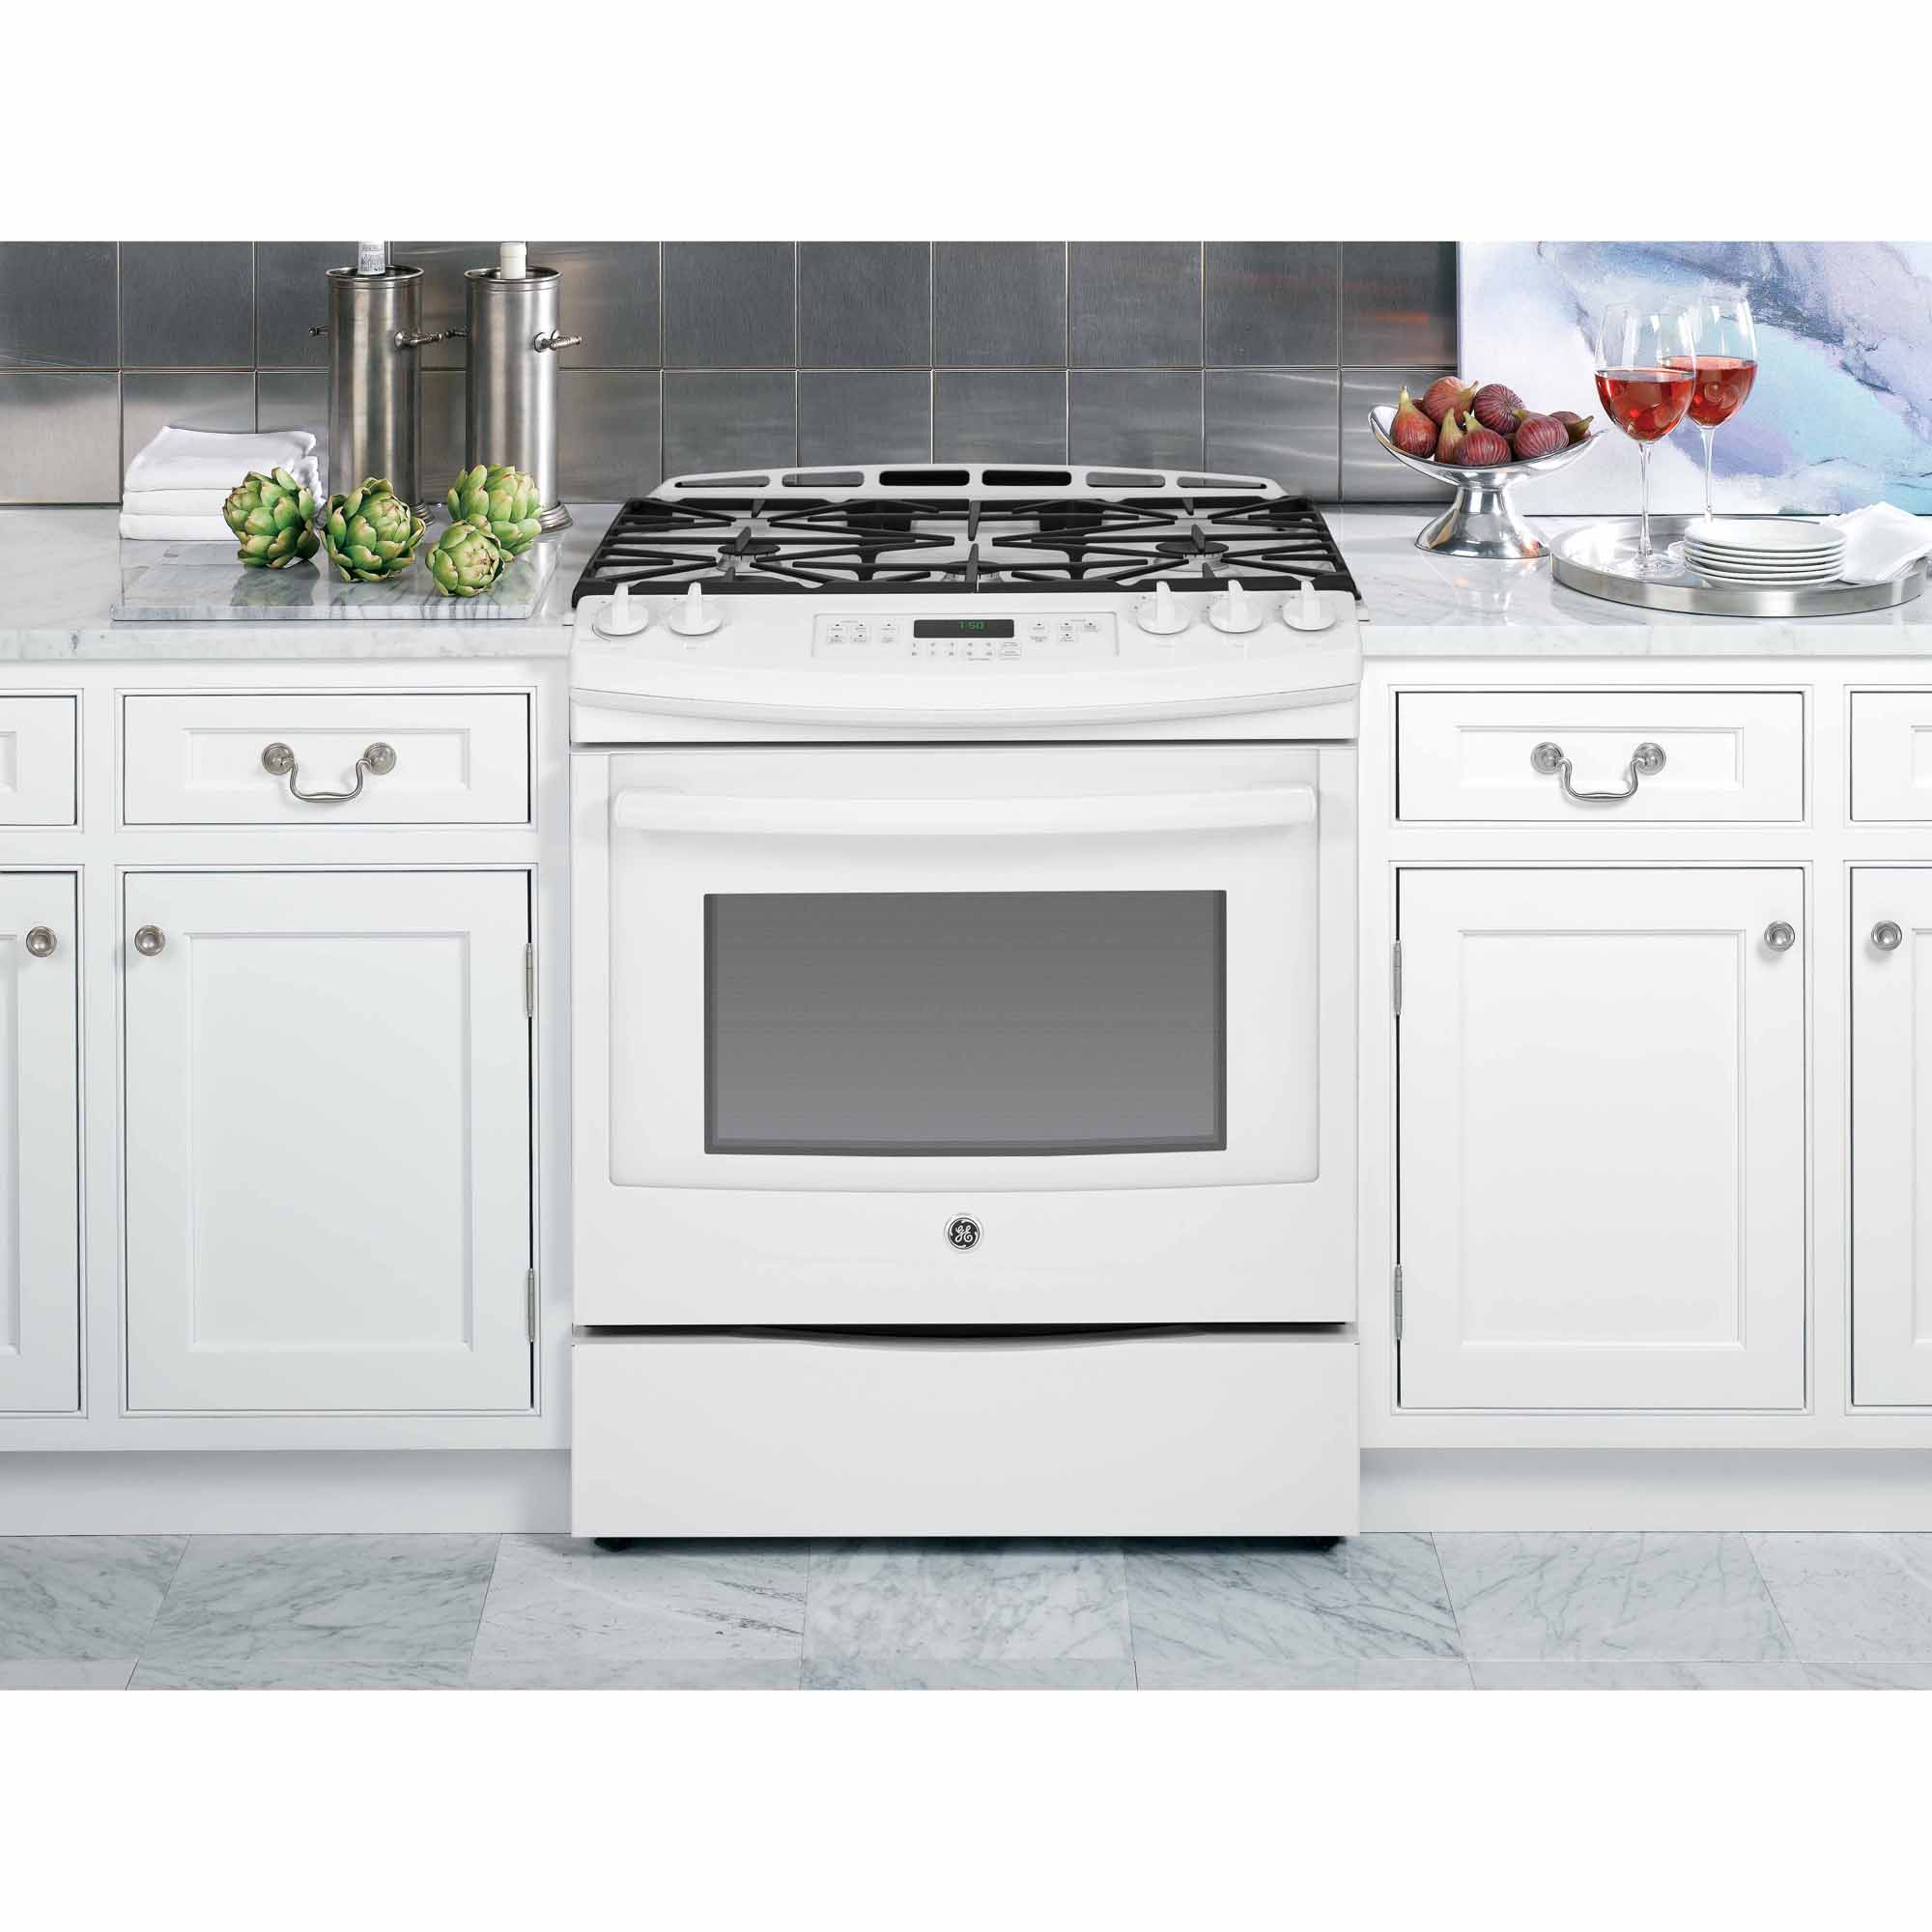 GE Appliances JGS750DEFWW 5.6 cu. ft. Slide-In Gas Range - White